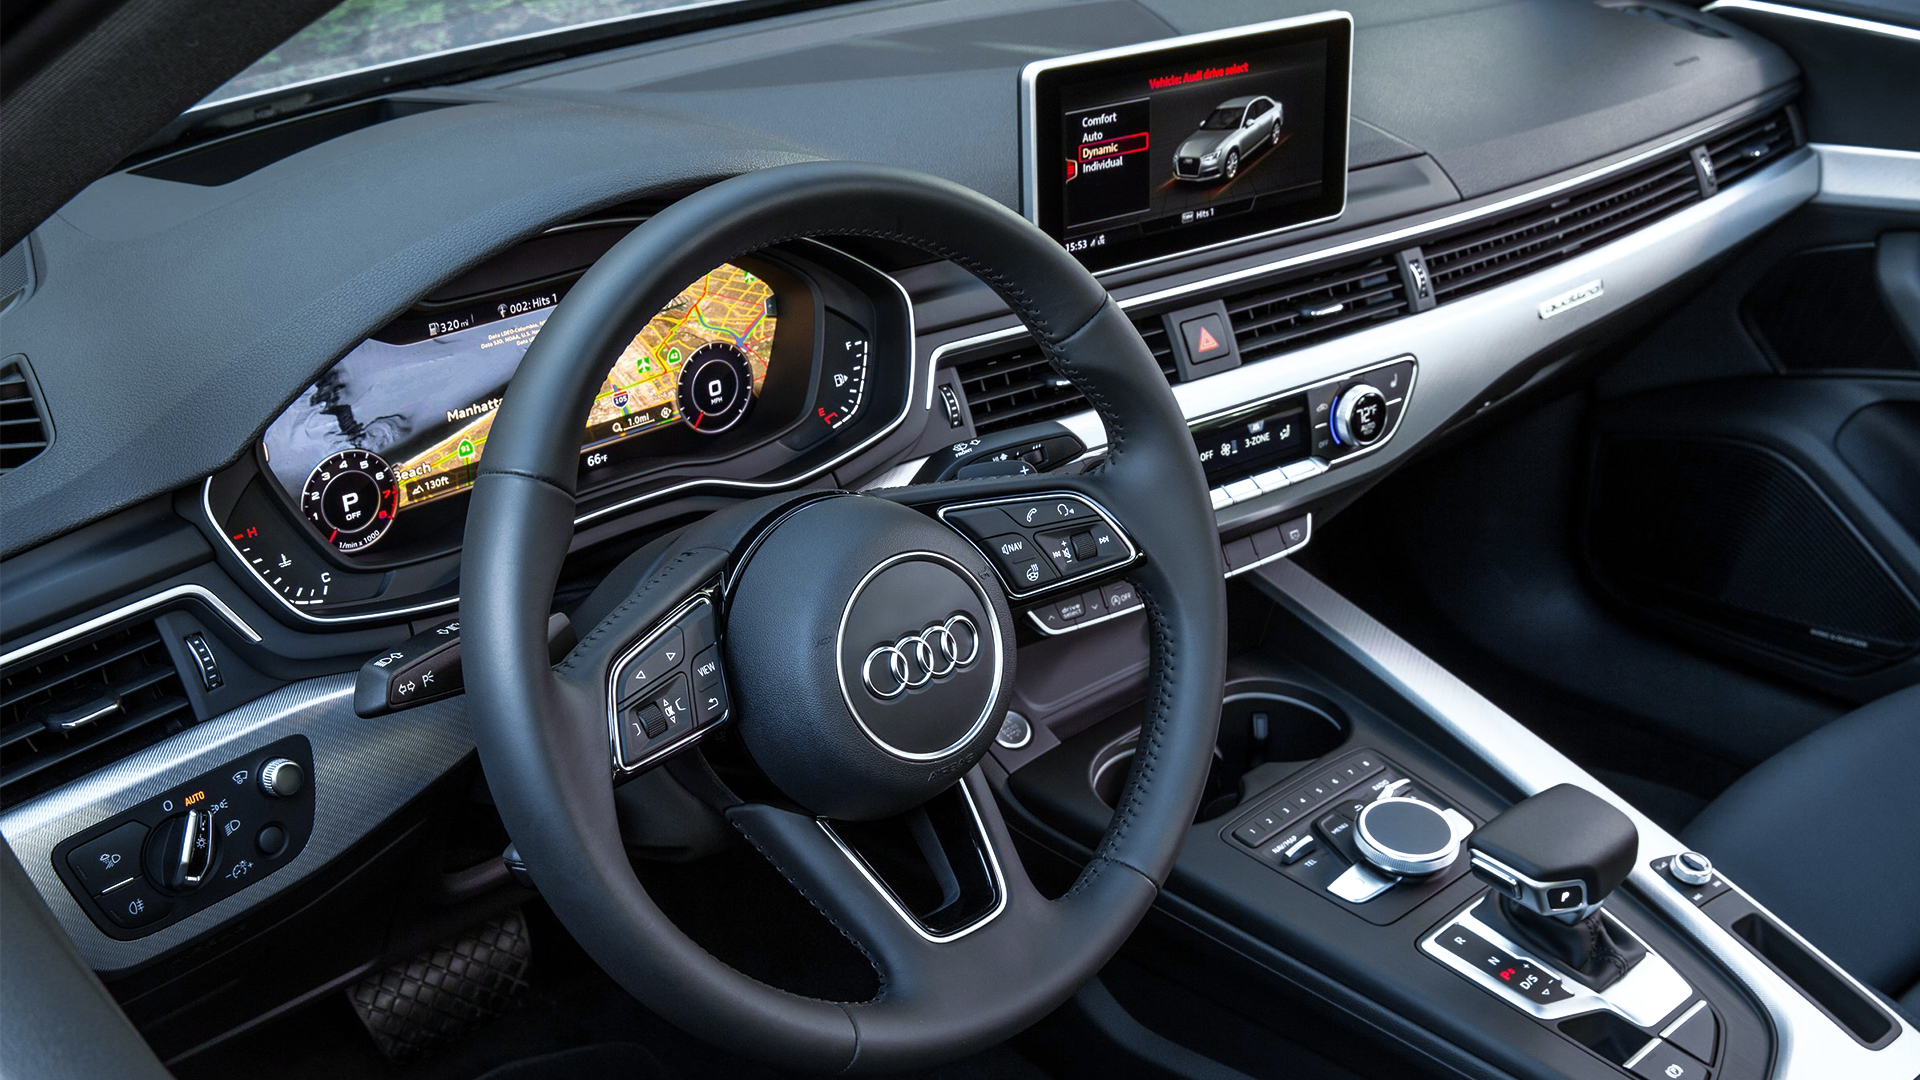 Audi Cockpit based on Kanzi HMI Toolchain